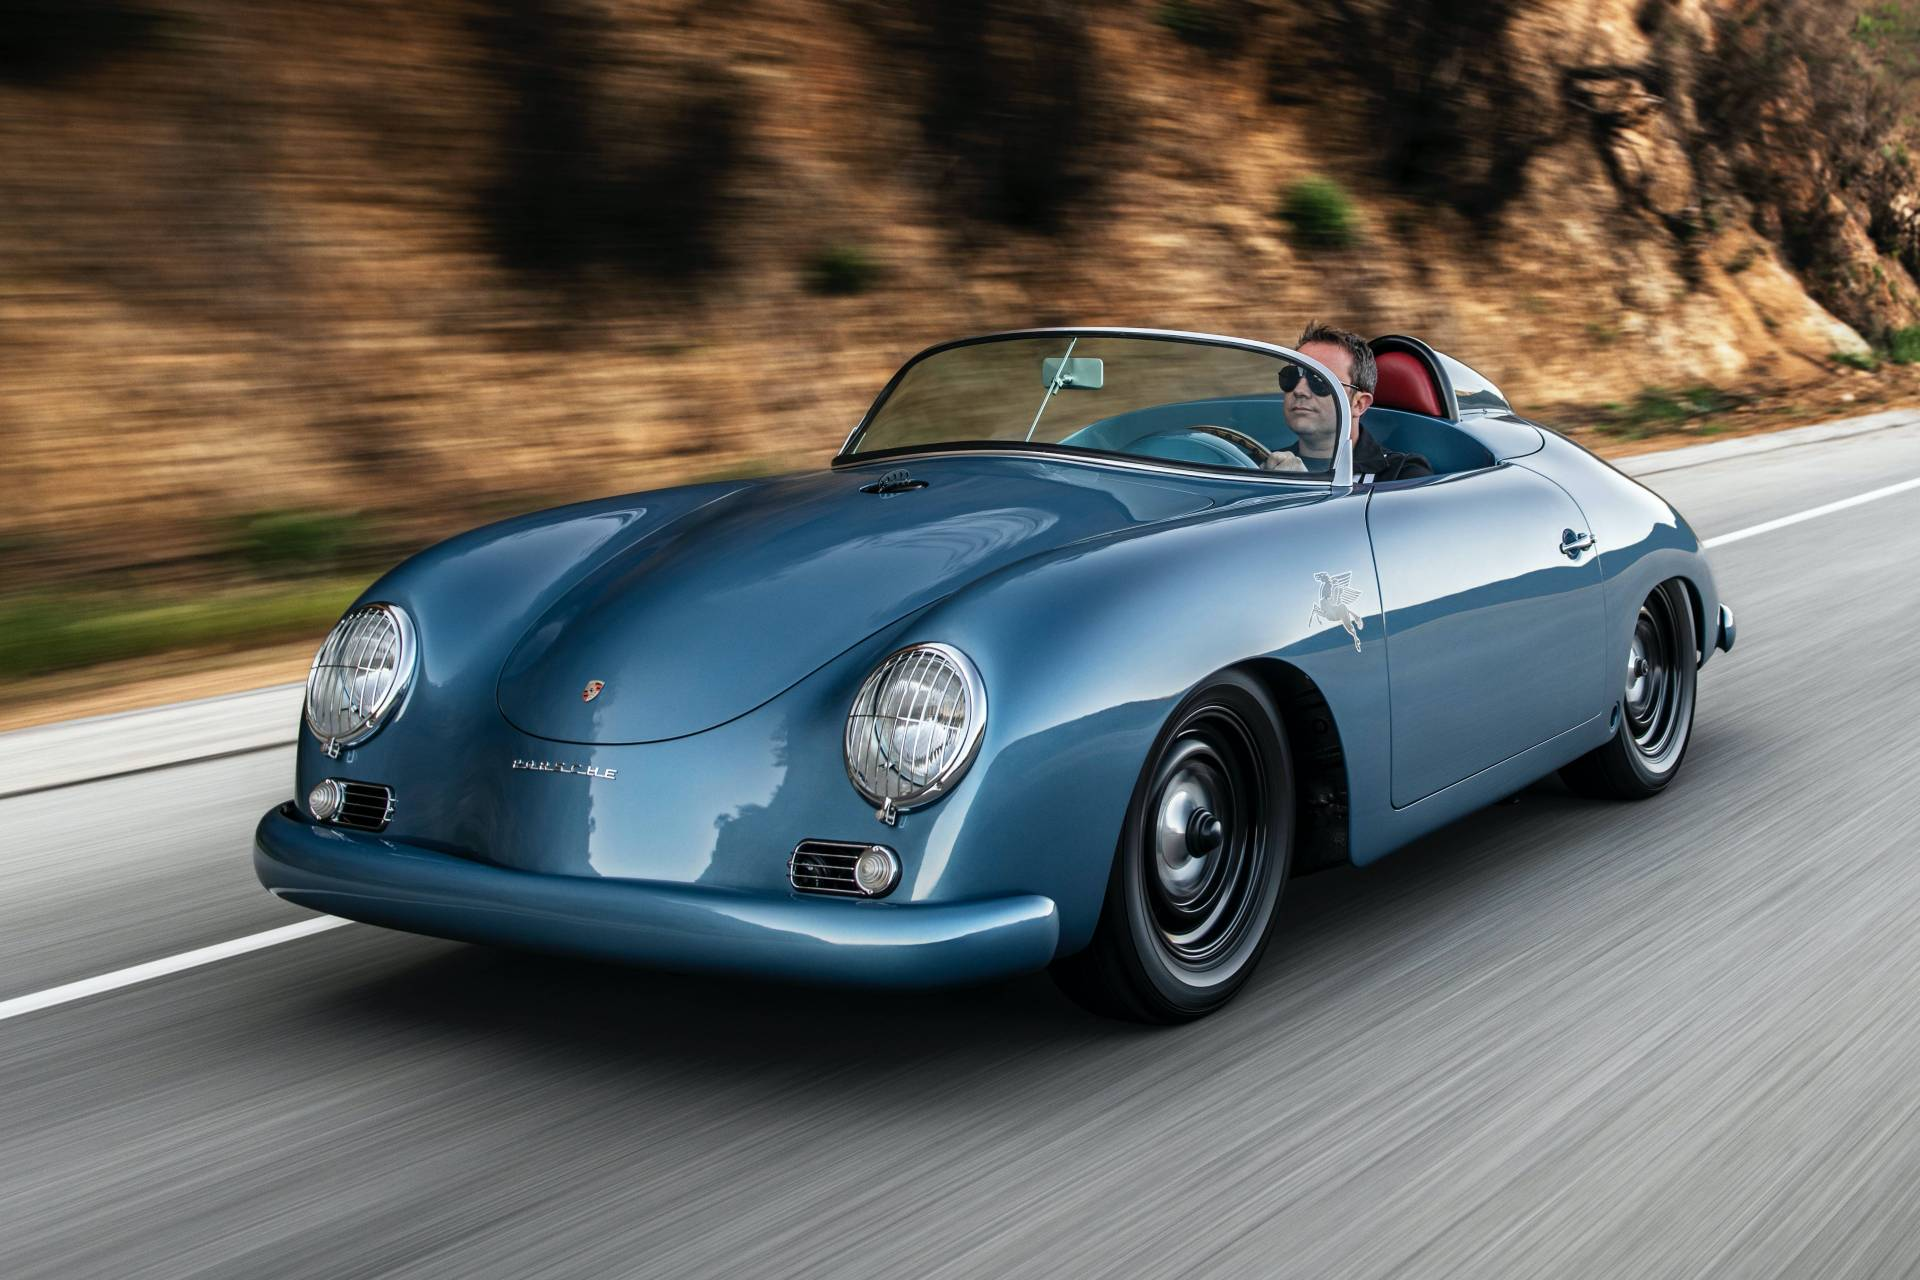 Porsche-356-Speedster-1959-Aquamarine-Transitional-By-Emory-Motorsport-1